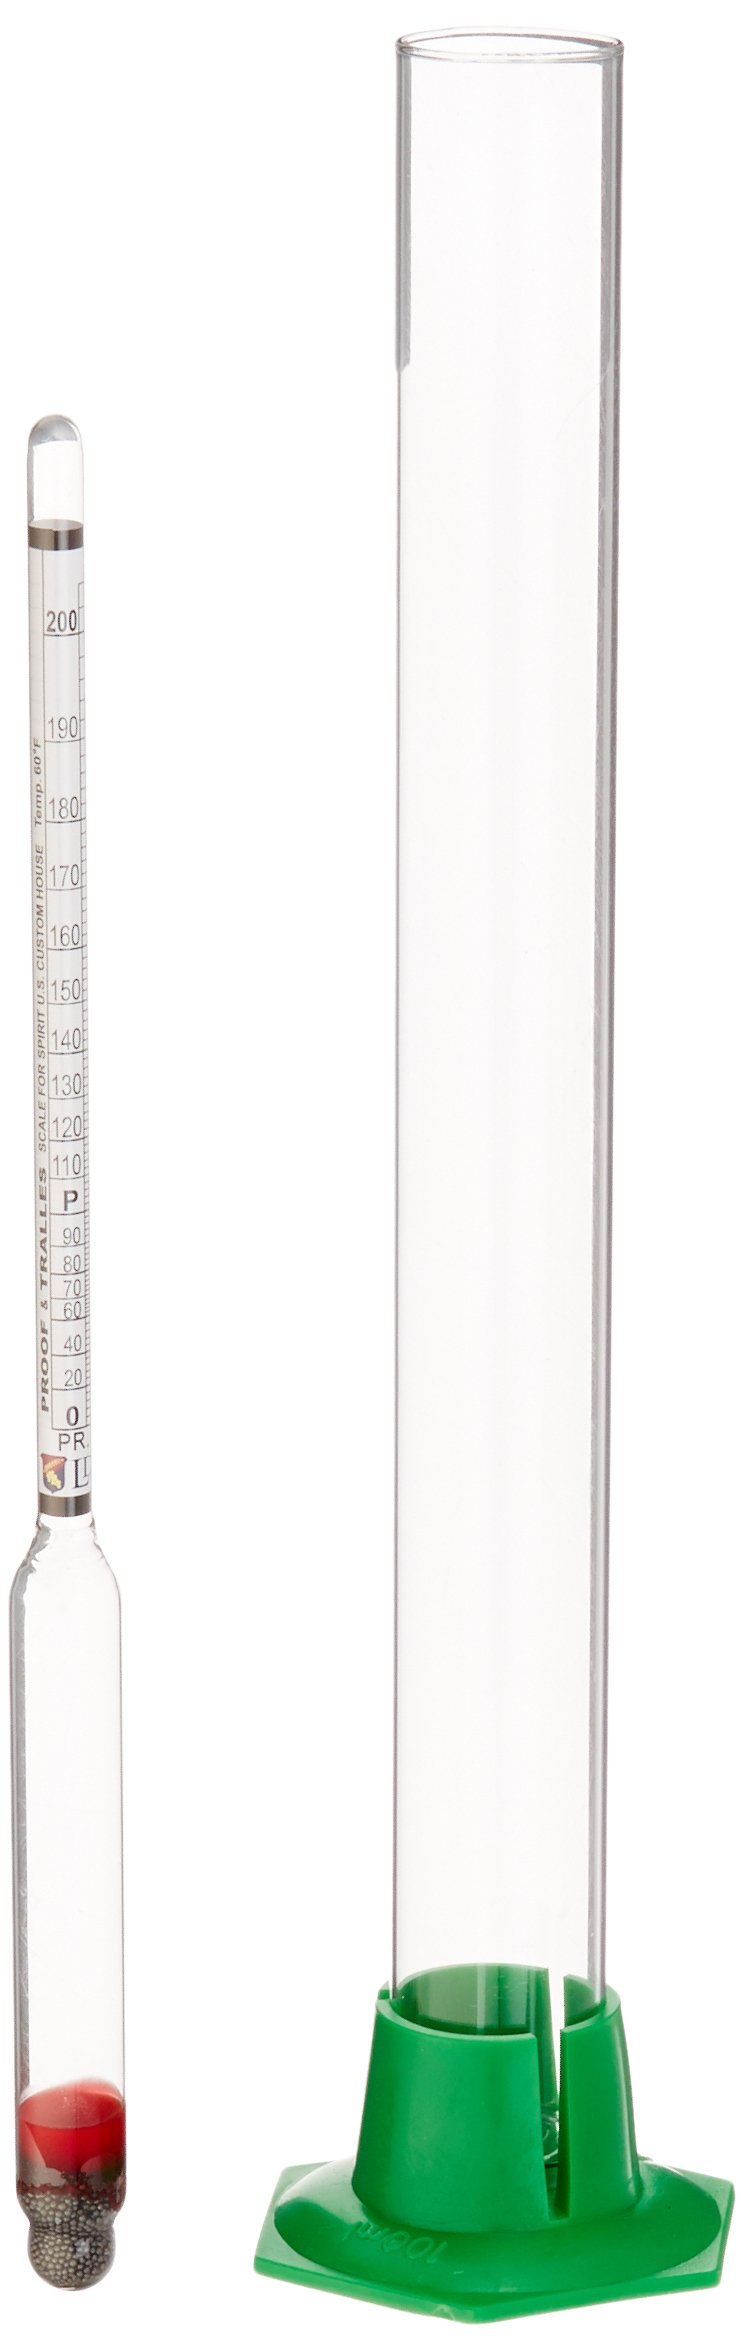 Naruekrit R3-XIKQ-AD0G Proof and Tralle Hydrometer with 12' Glass Test Jar